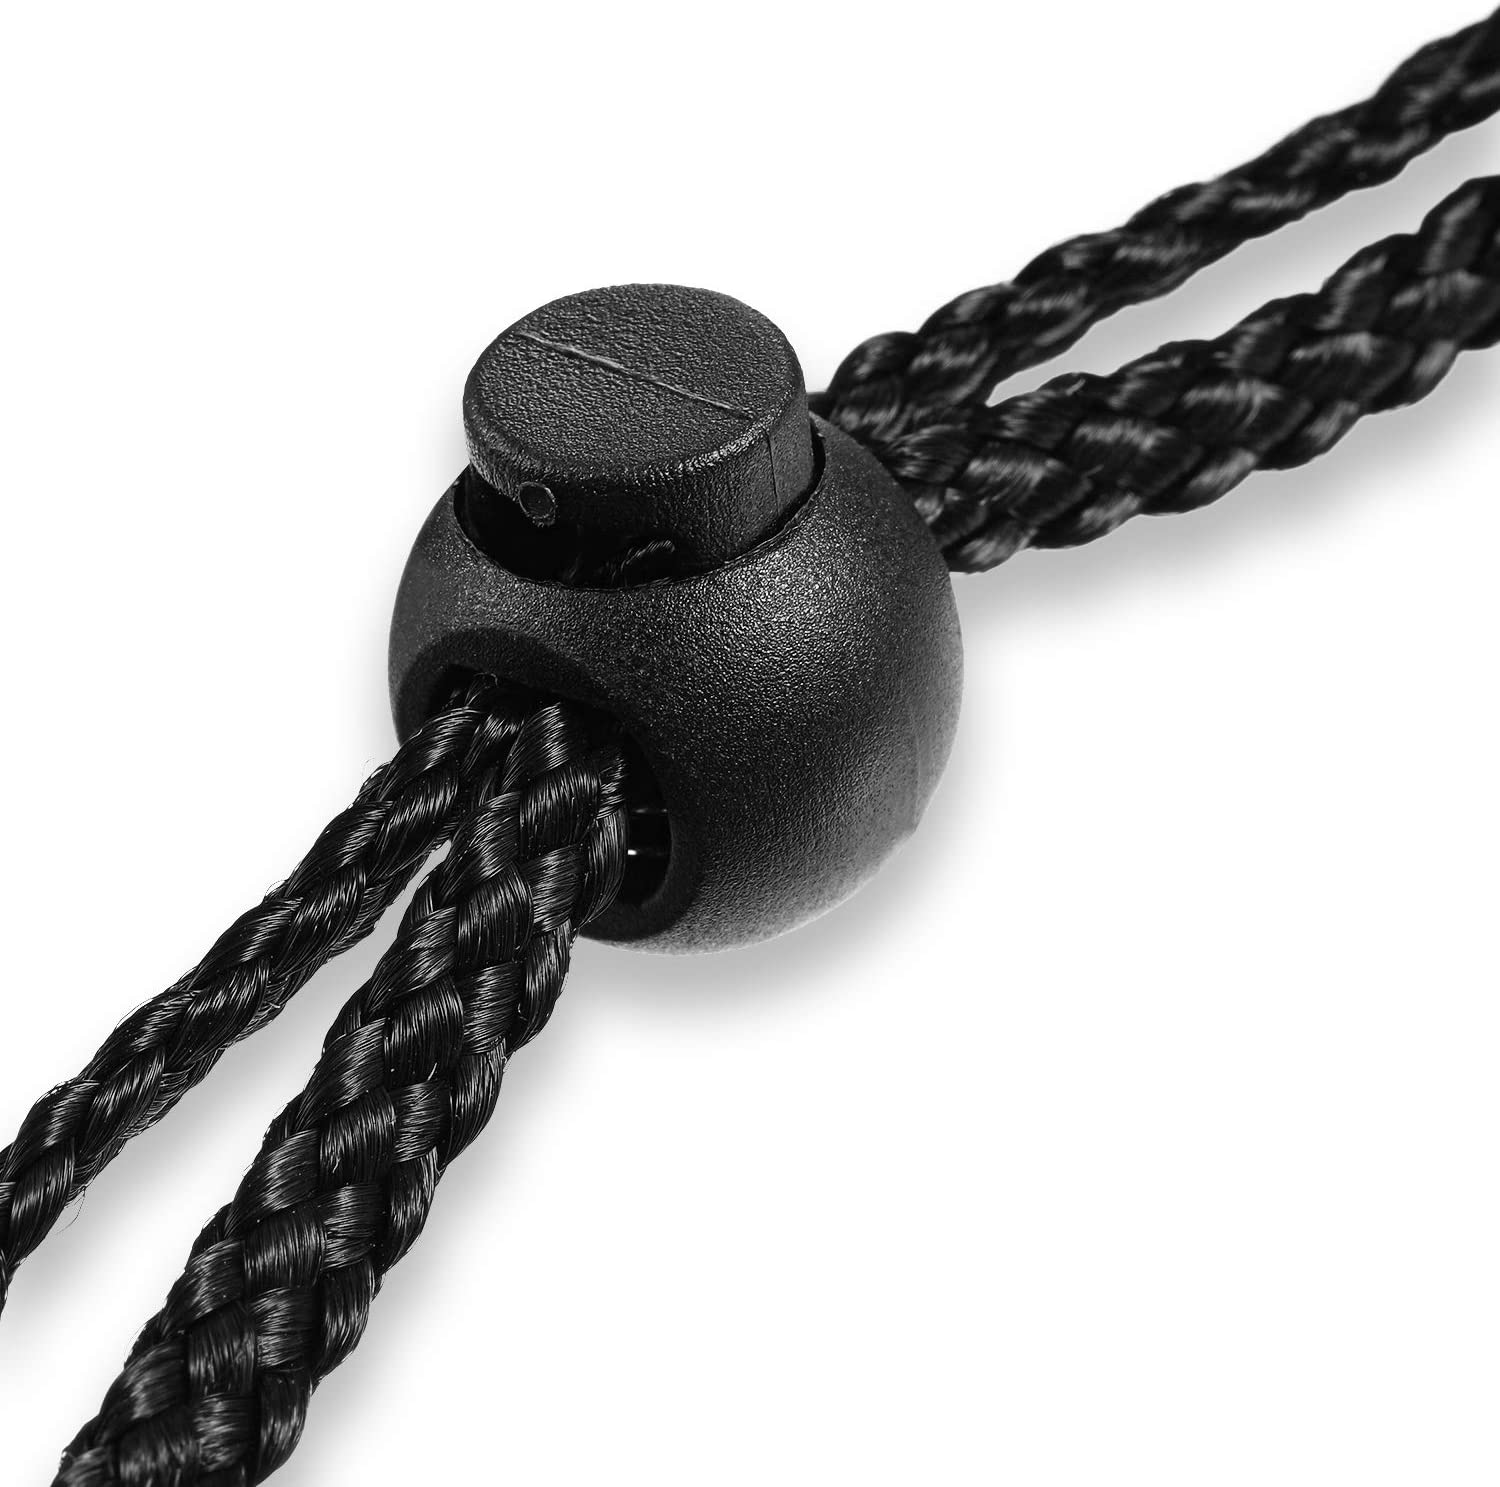 Shoelaces Daily Necessities Clothes 150 Pieces 3 Types Black Spring Plastic Cord Locks End Spring Stop Toggle Stoppers Buttons Fastener Slider Suit for Drawstring Backpack